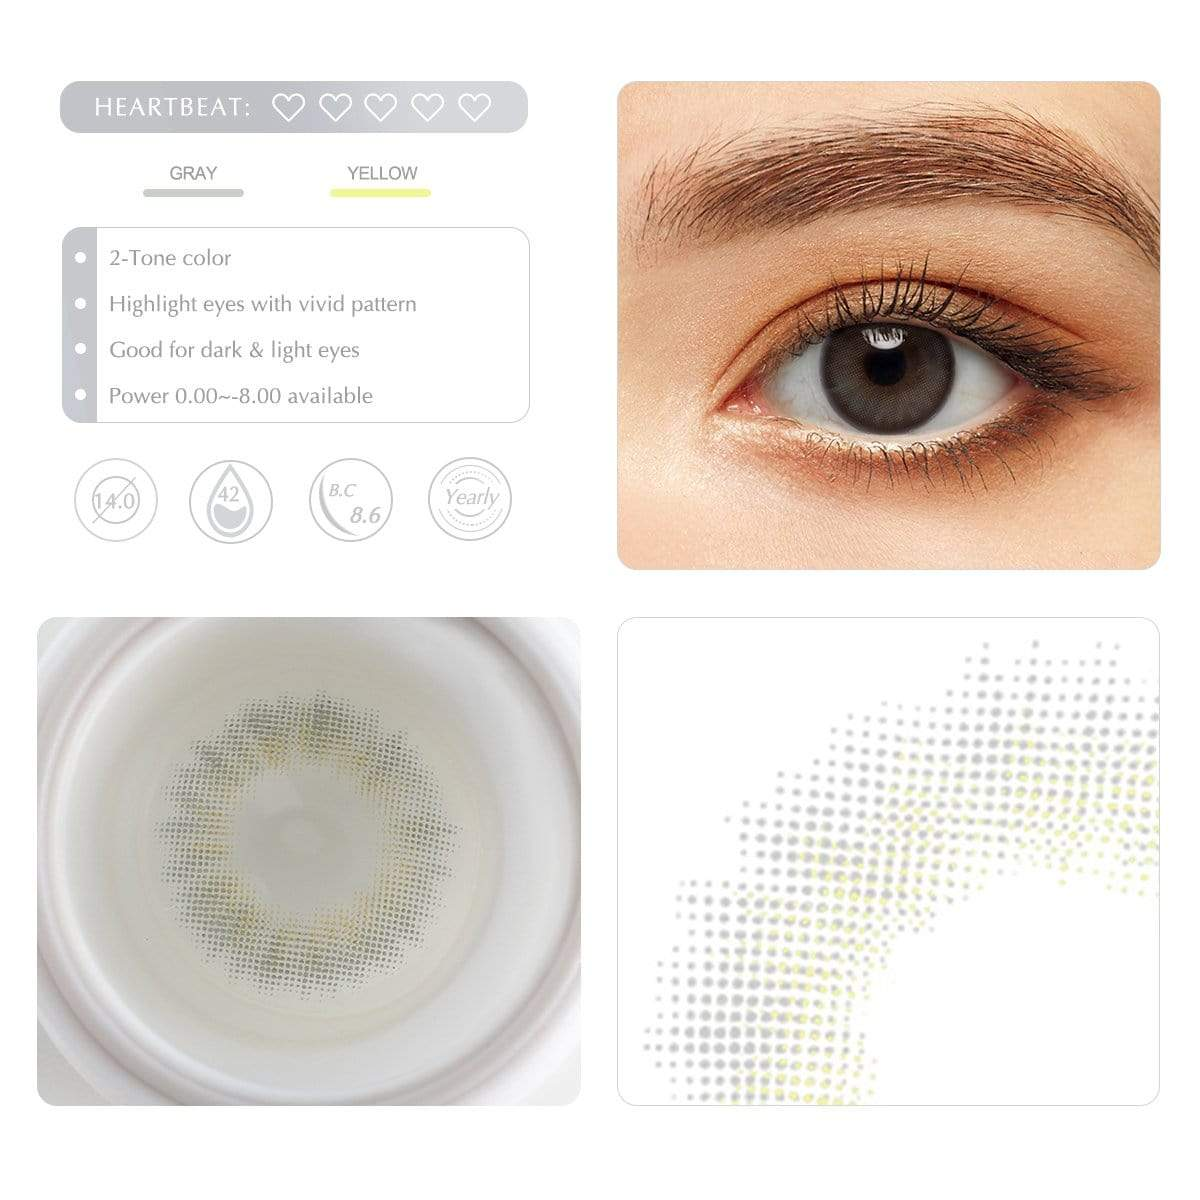 Gray contact lens details display rederings